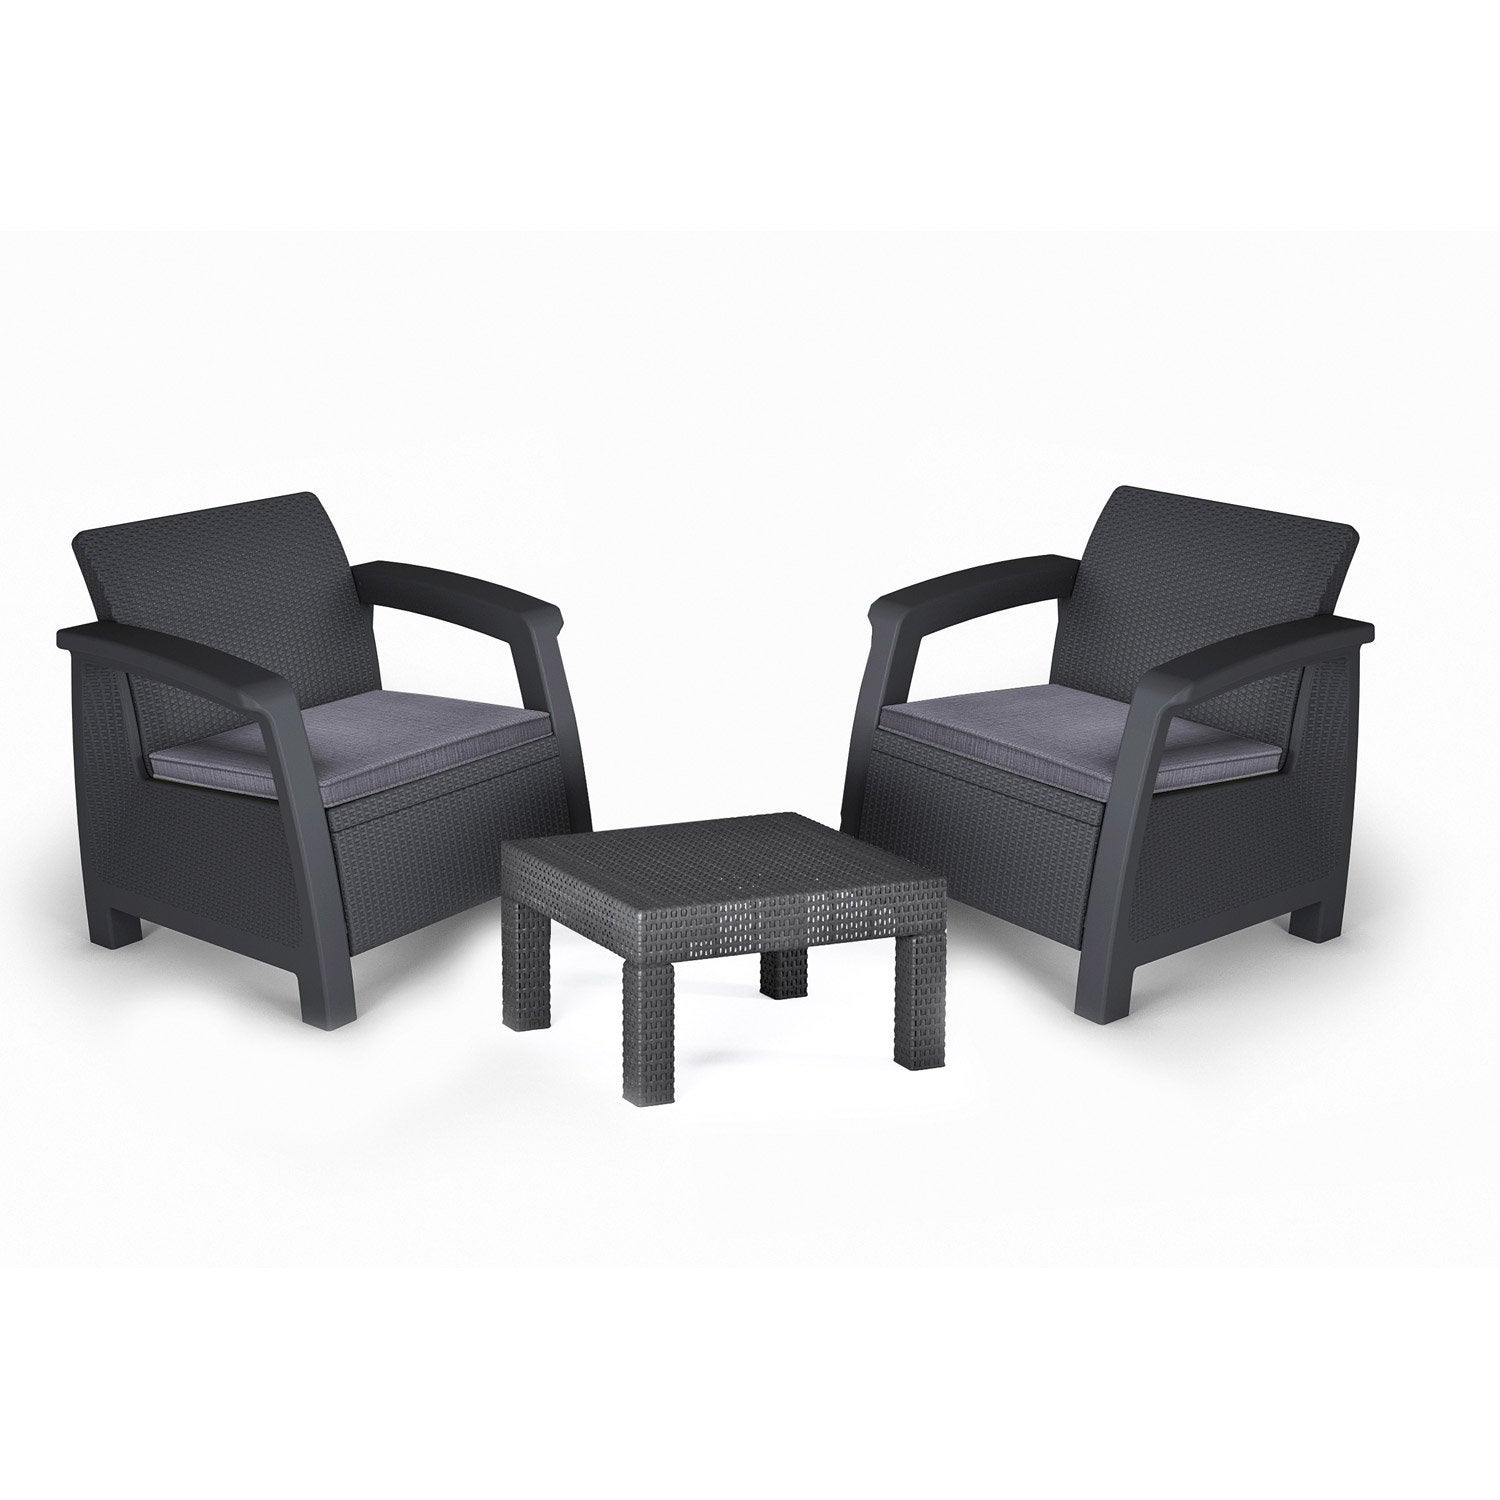 Salon de jardin bahamas r sine inject e anthracite table 2 fauteuils leroy - Leroy merlin salon jardin ...